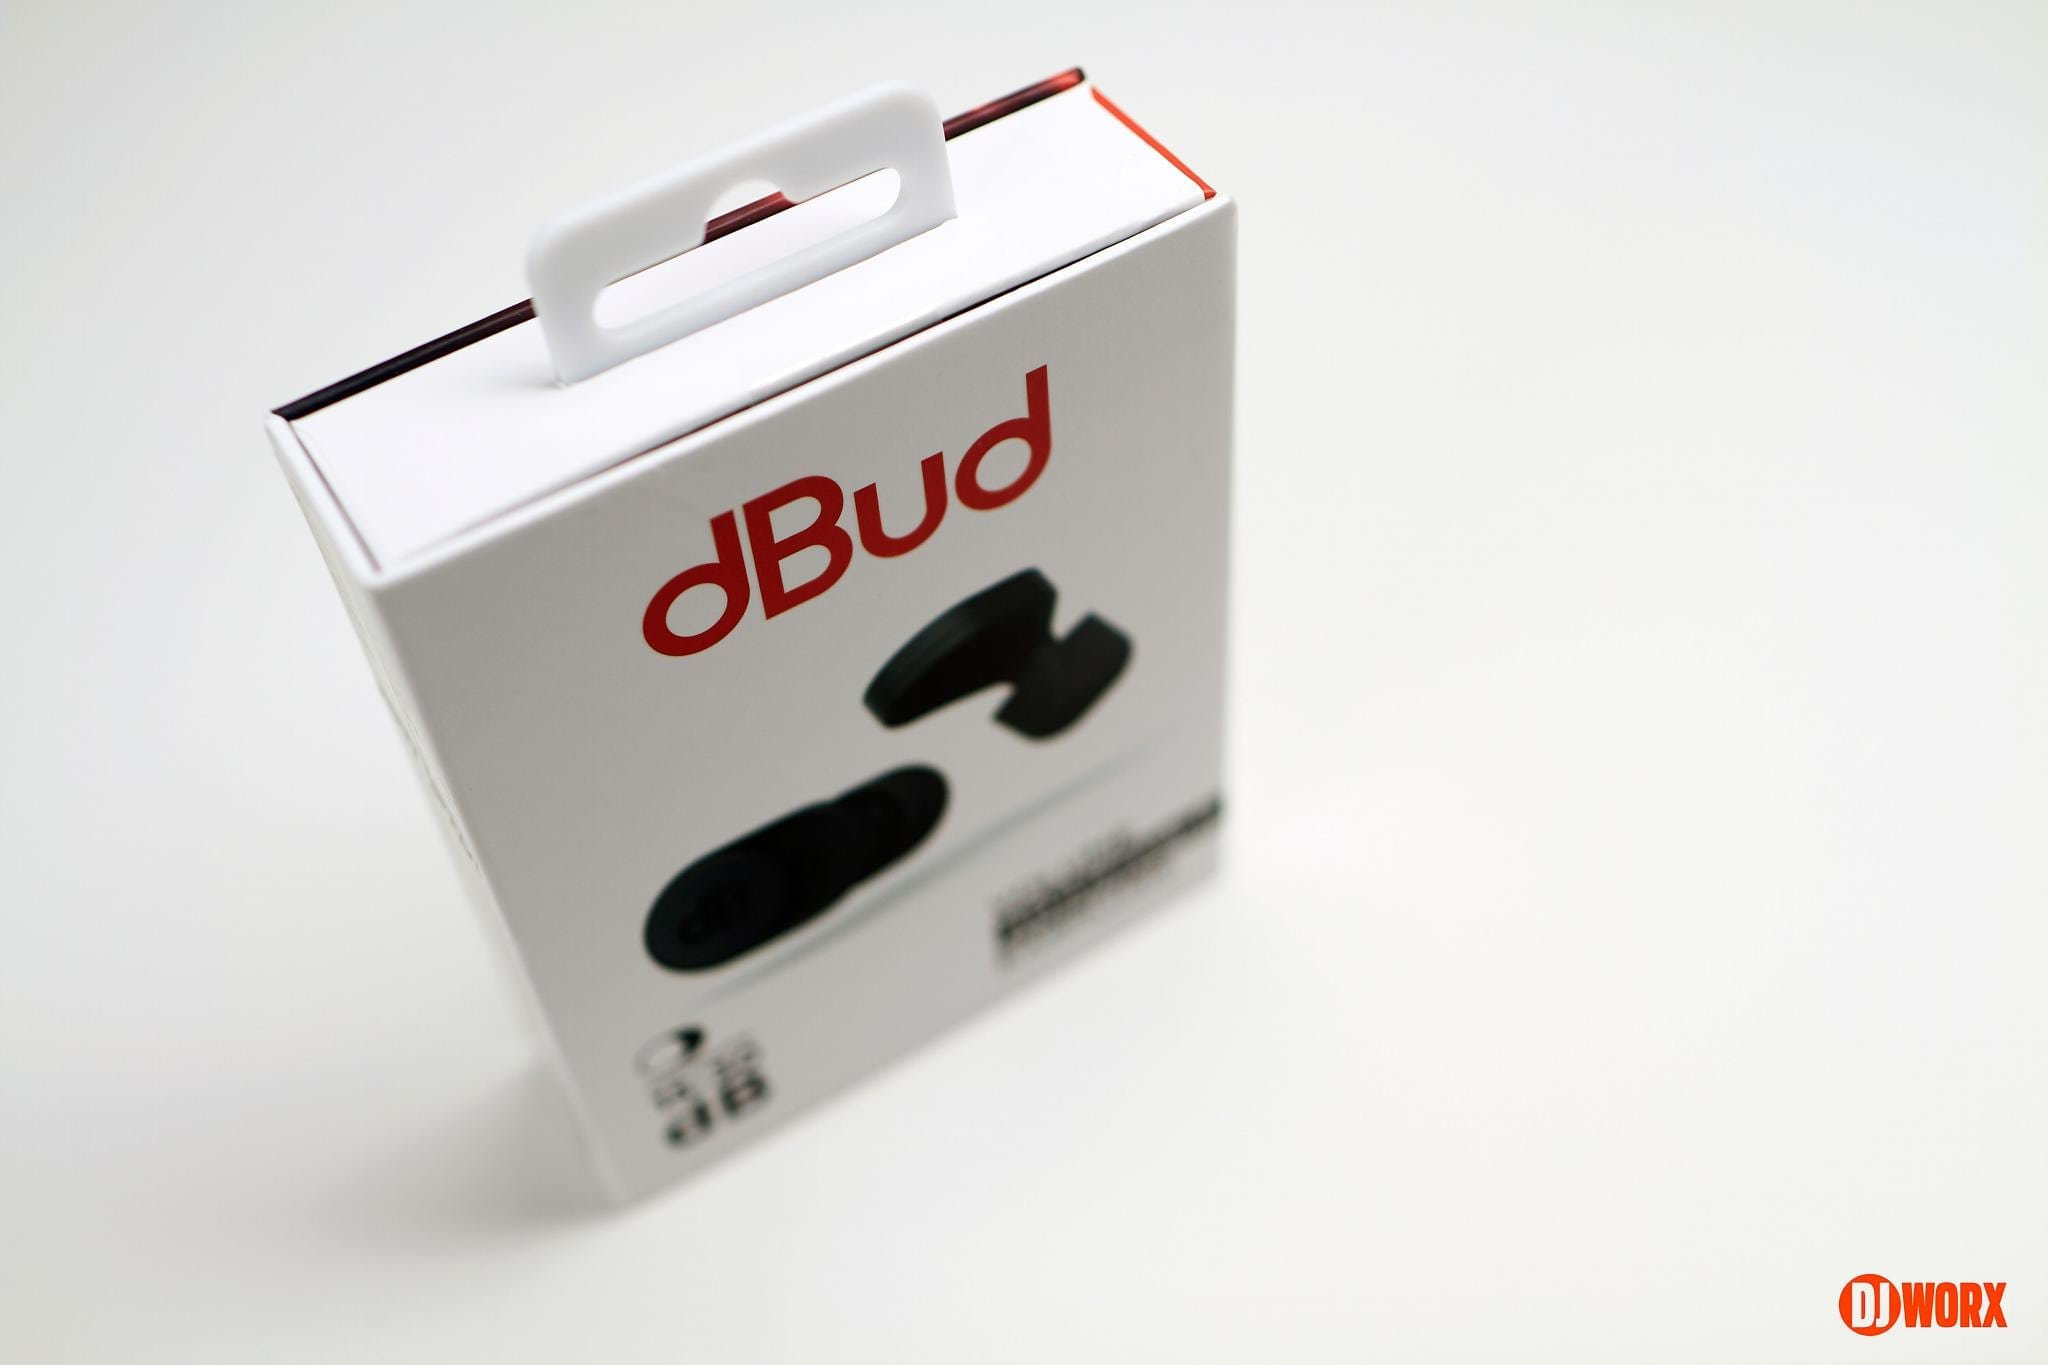 Dbud earplug review (1)